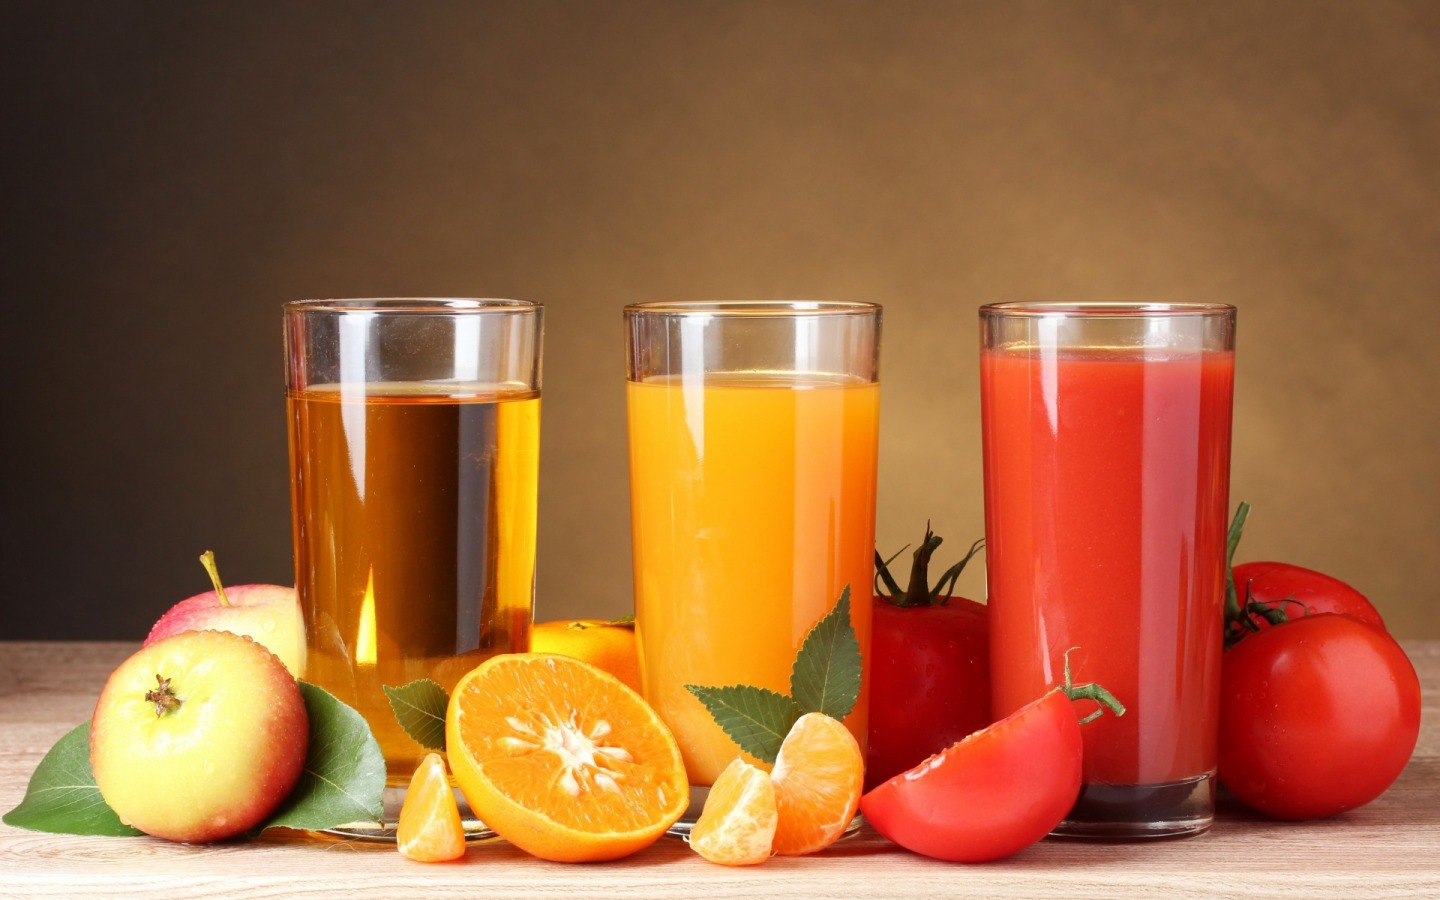 fresh-juices-1440-900-7998